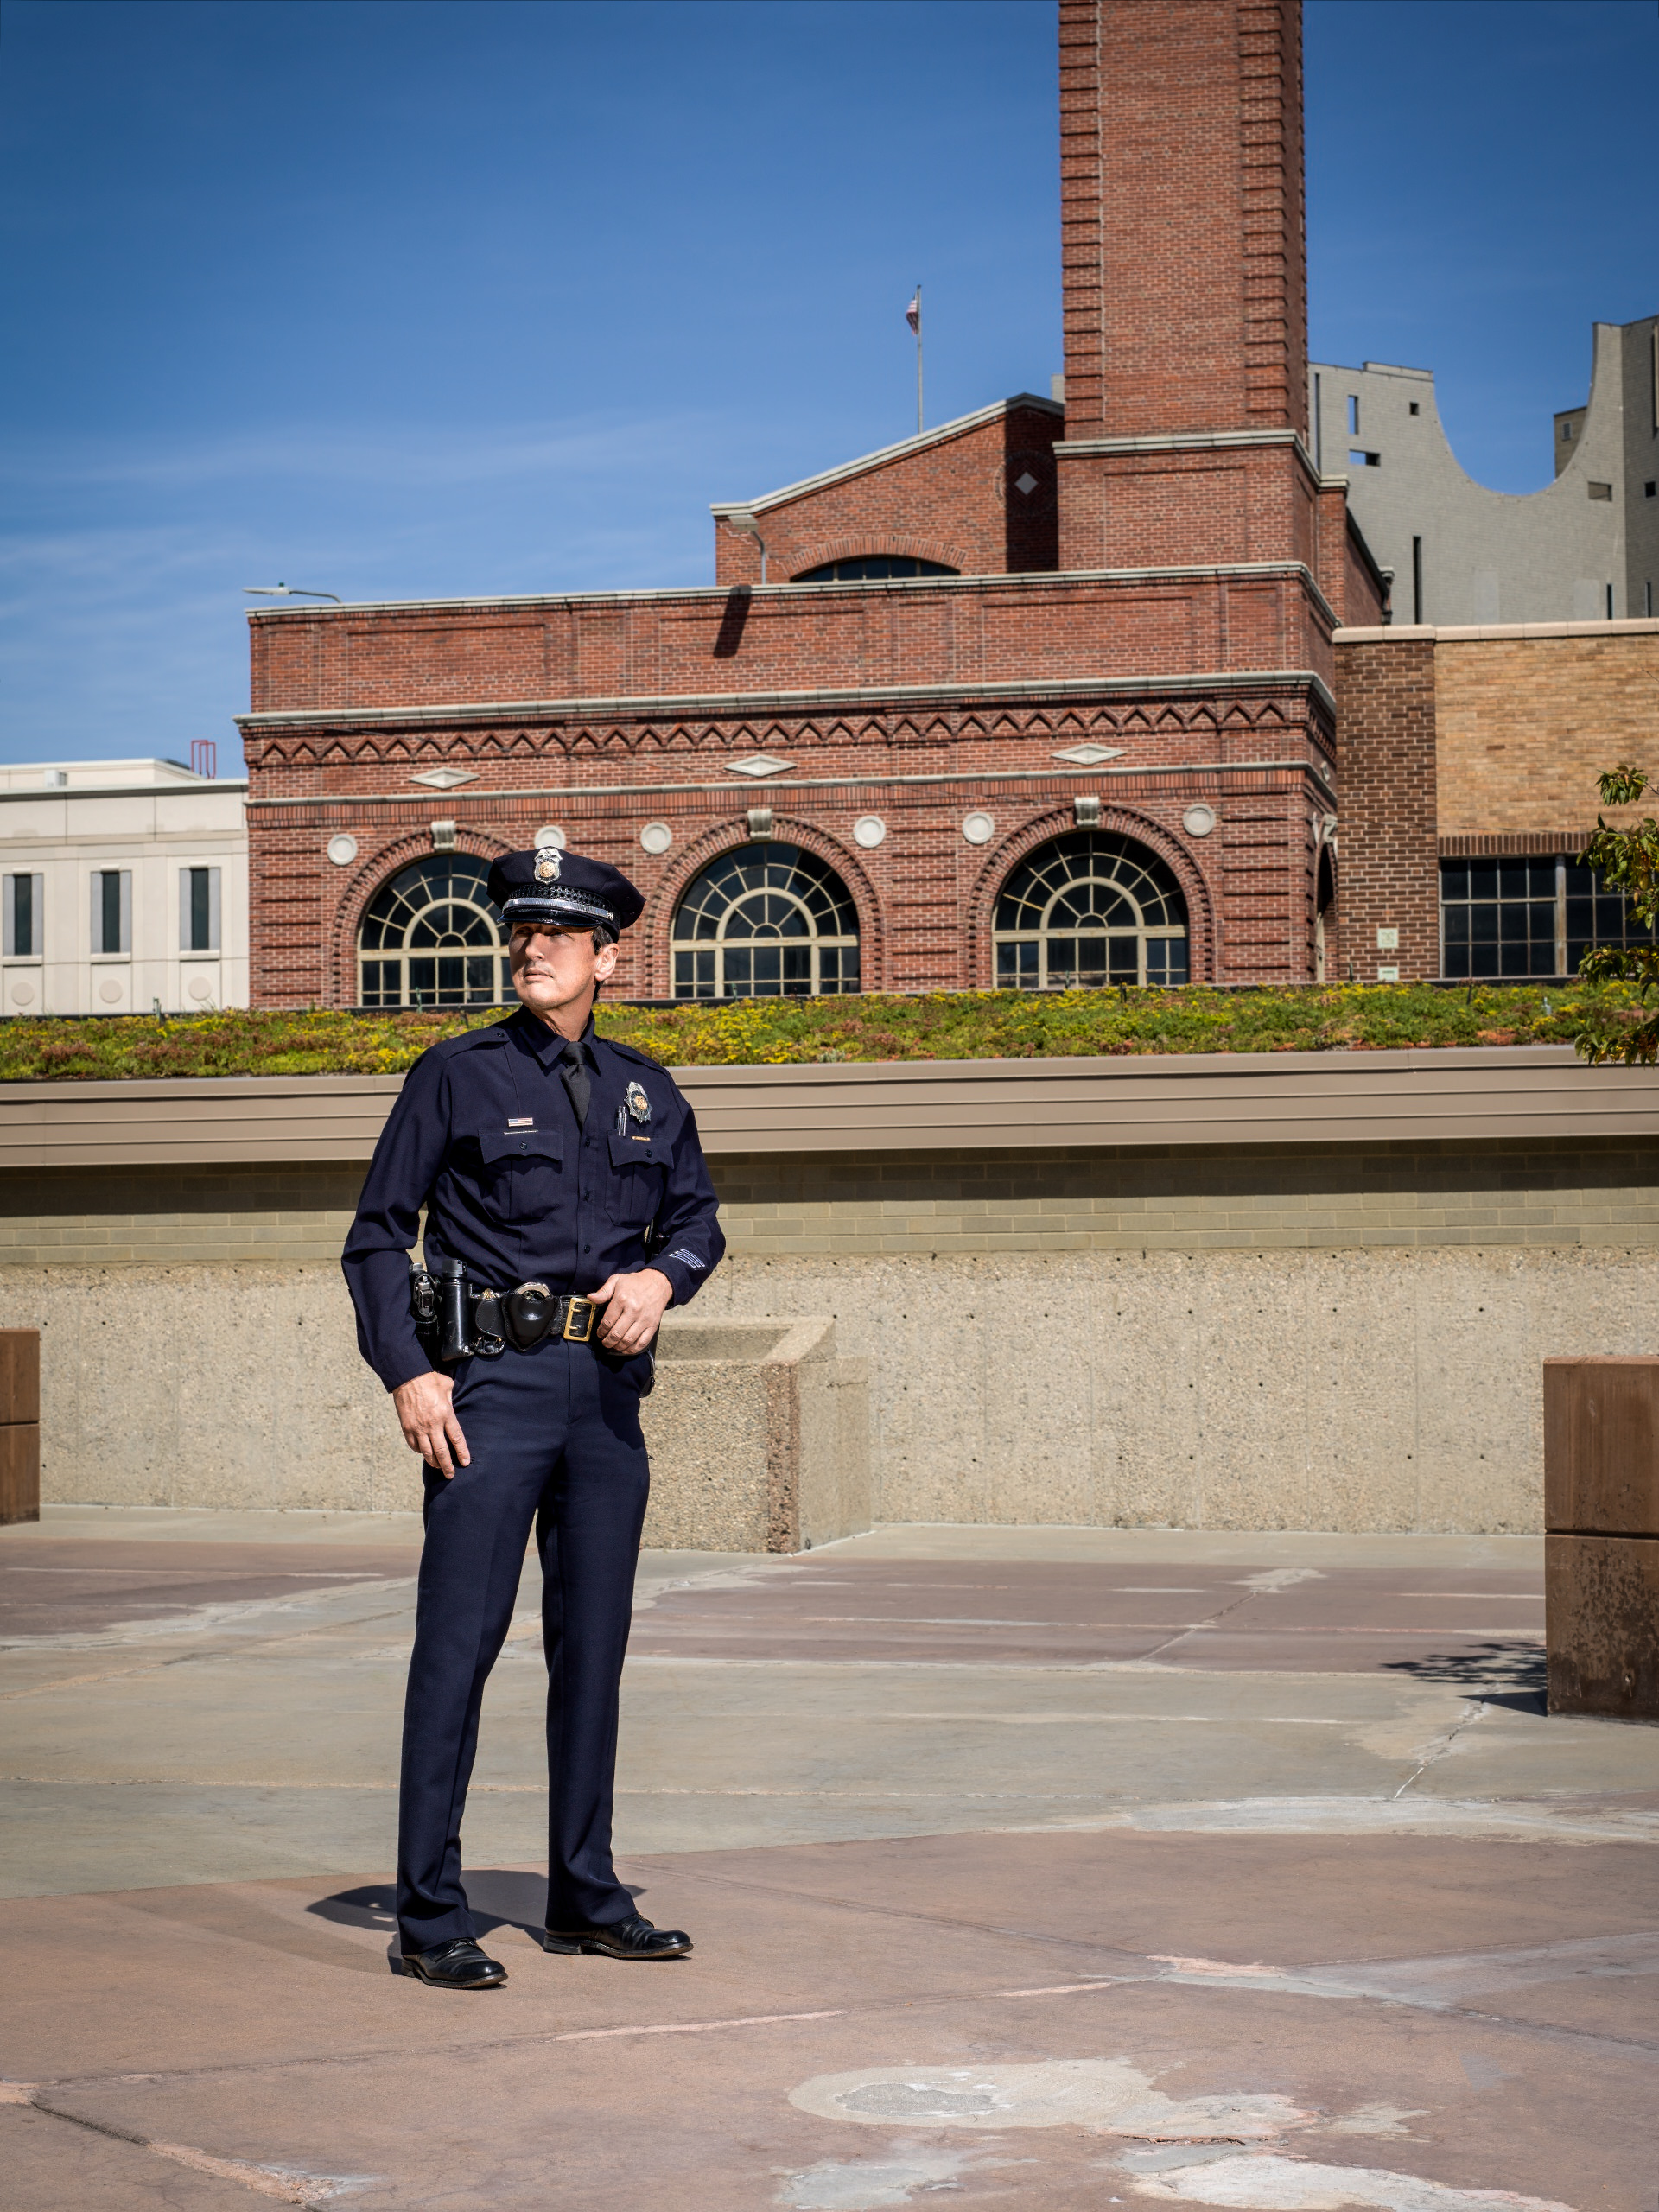 denver police  portrait 5280 magazine